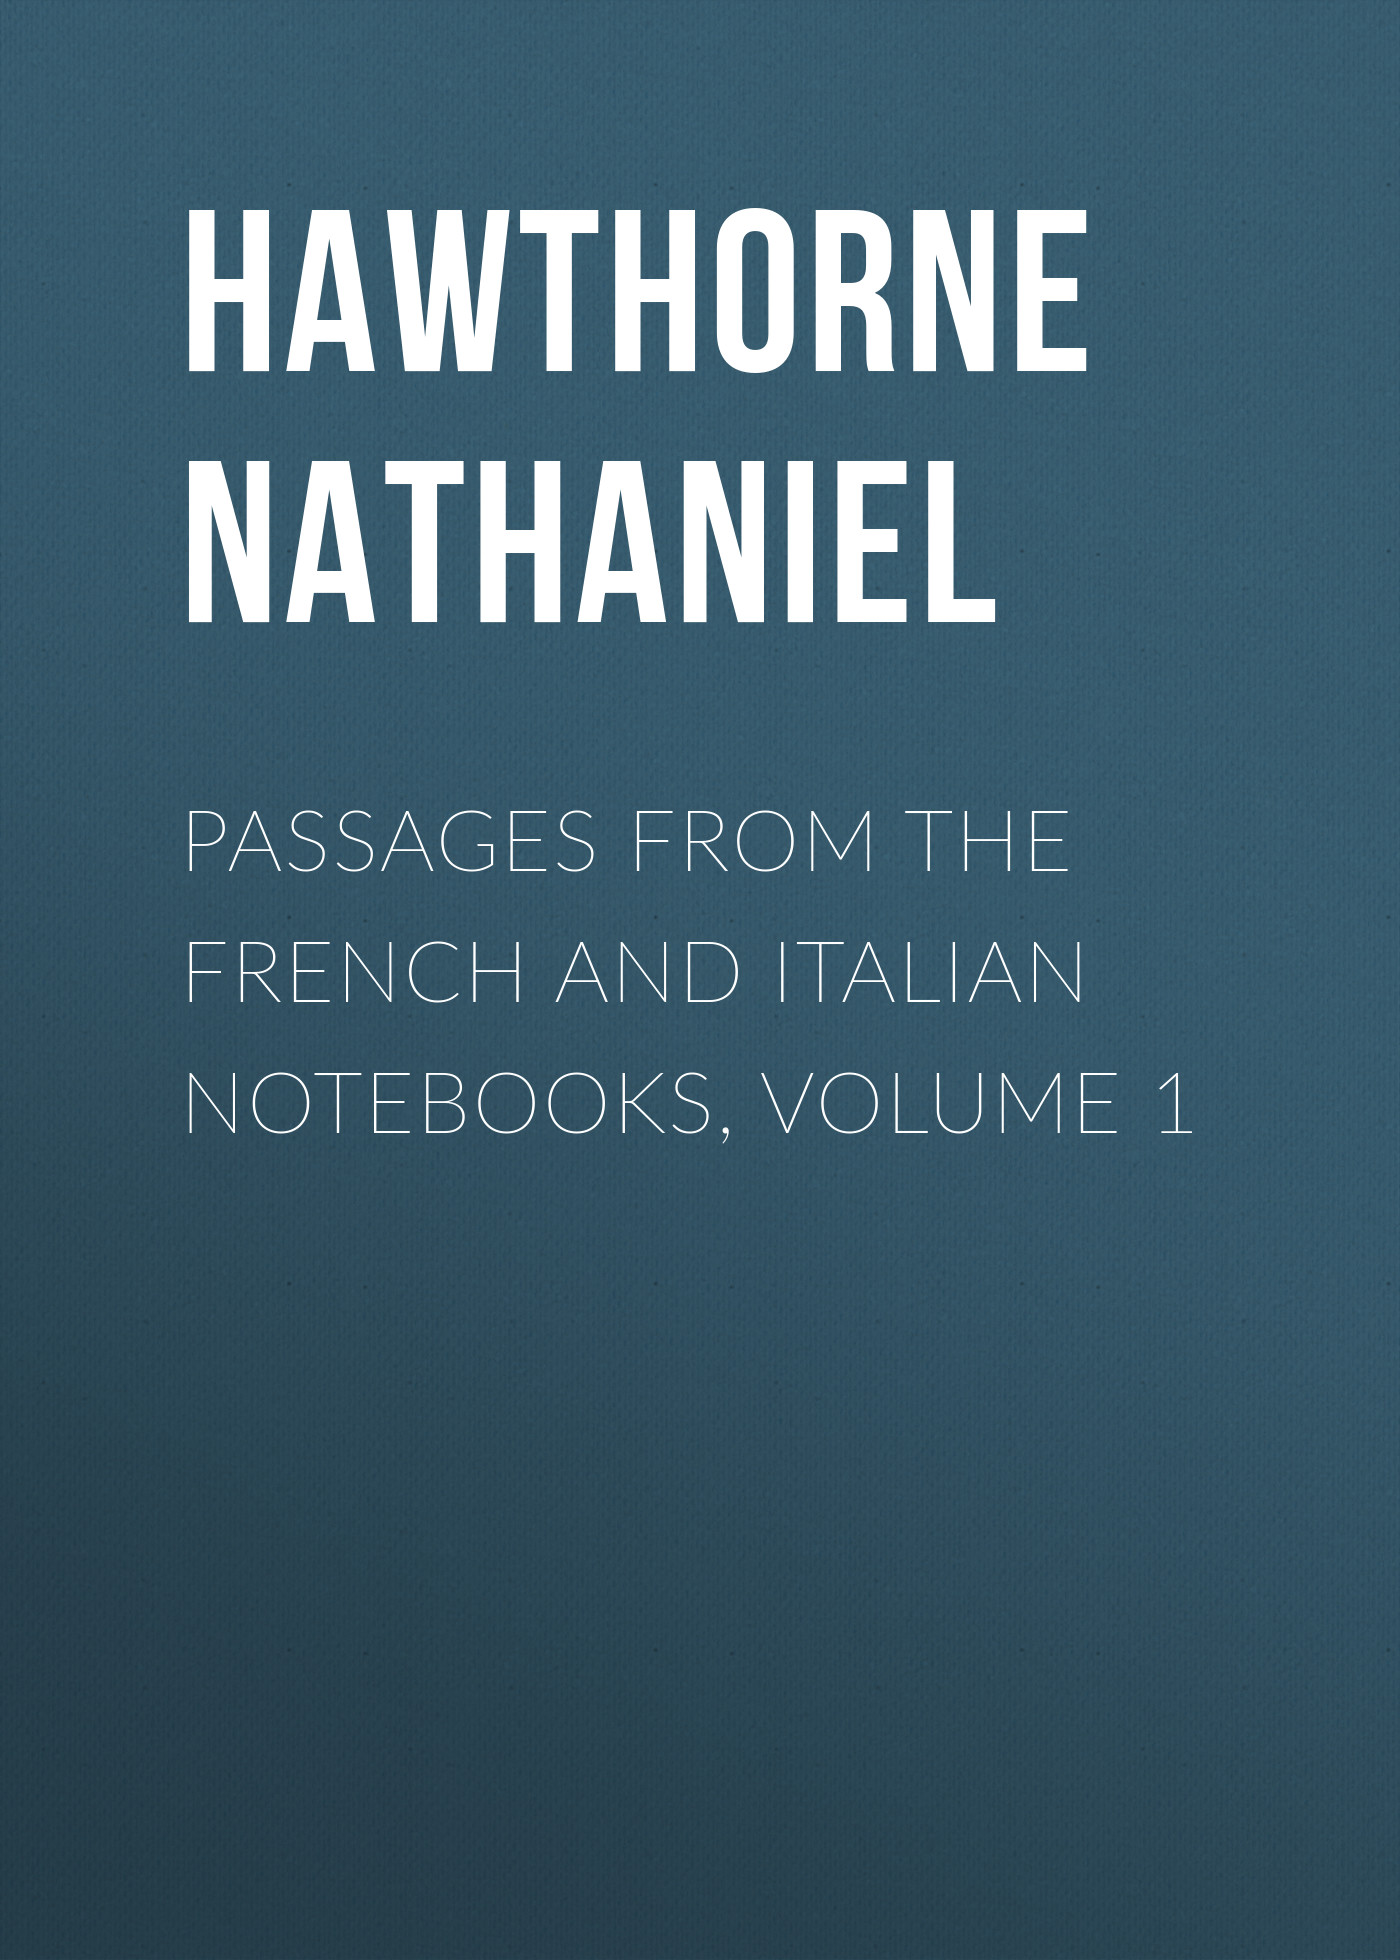 Hawthorne Nathaniel Passages from the French and Italian Notebooks, Volume 1 hawthorne nathaniel passages from the english notebooks complete